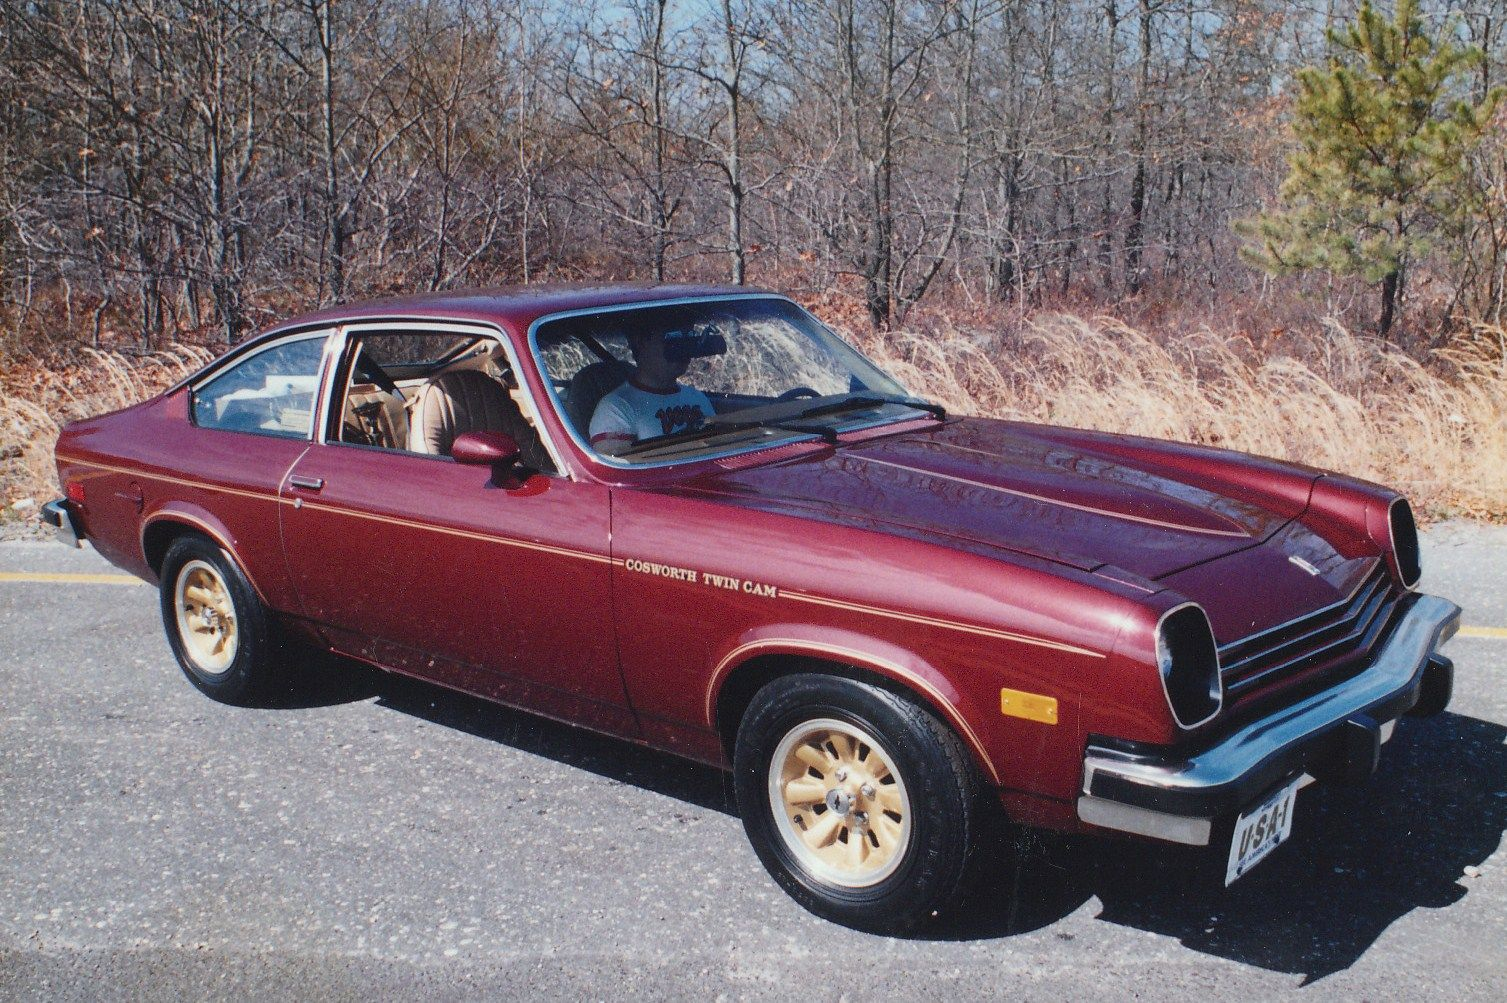 The Car That Nearly Destroyed Gm Chevrolet Vega Classic Cars Trucks Hot Rods Chevrolet